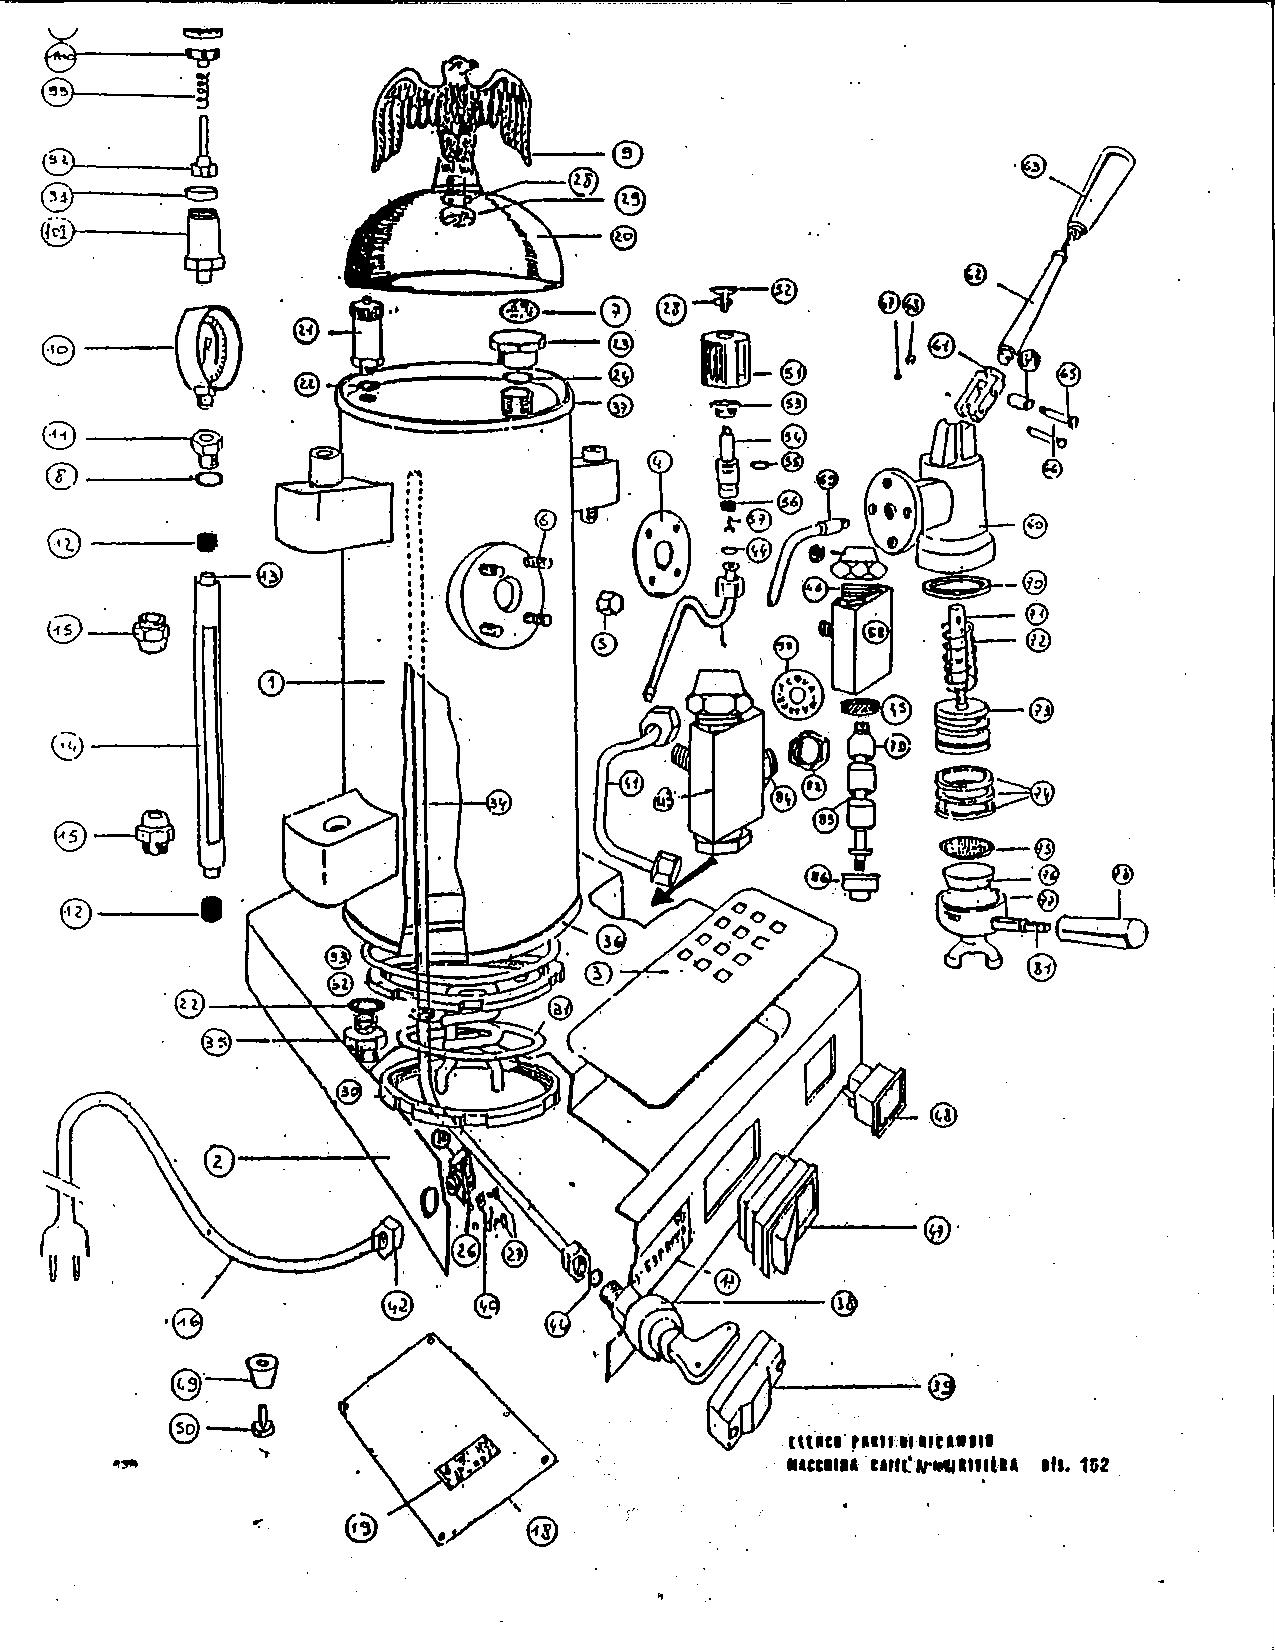 iphone 3gs schematic diagram 2003 porsche cayenne wiring 3 pinouts diagrams usb connector for